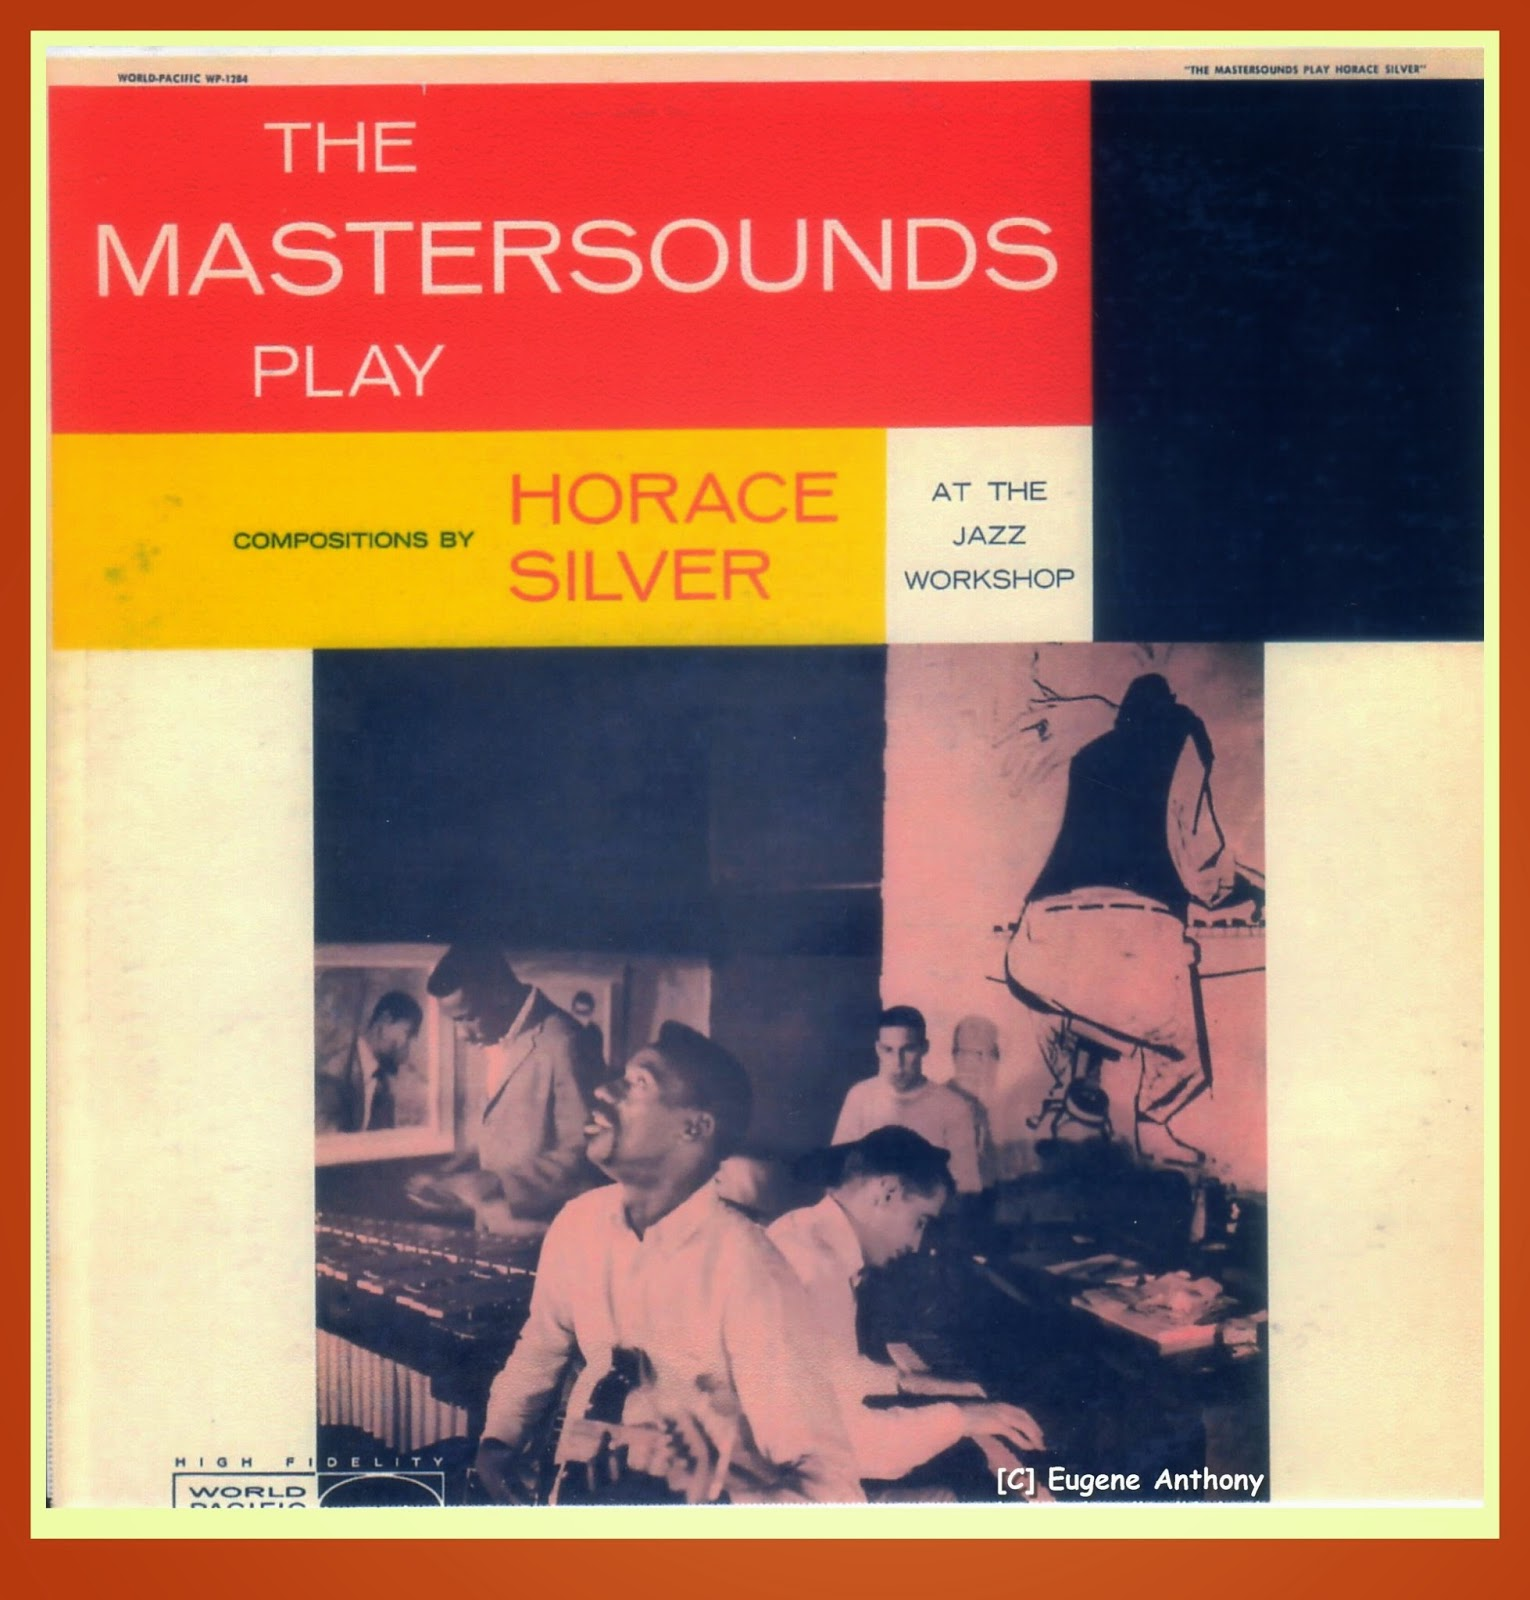 Too cool the mastersounds play horace silver